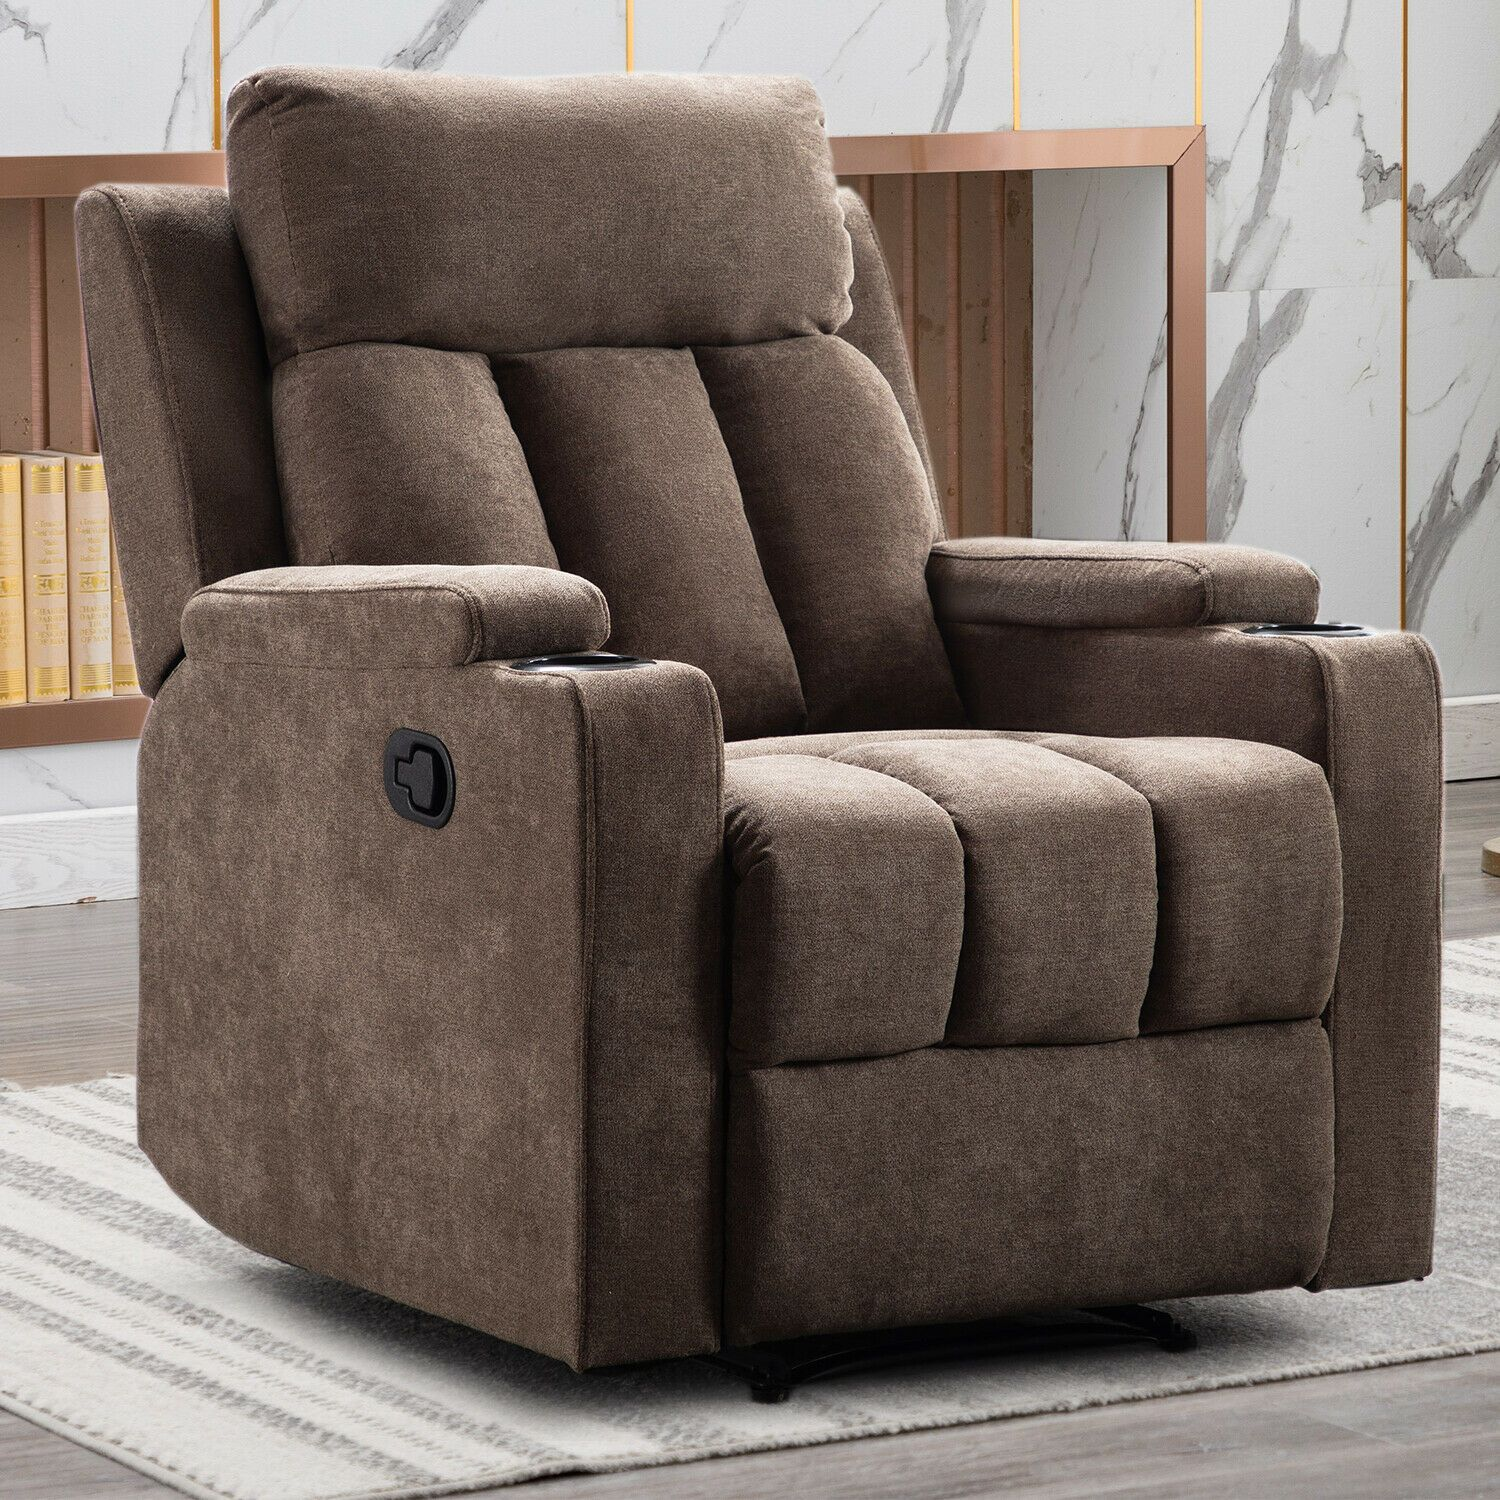 Manual Recliner Chair Contemporary Home Theater Recliner With 2 Cup Holders Sofa Microfiber Couch I In 2020 Couches For Sale Microfiber Couch Manual Recliner Chair